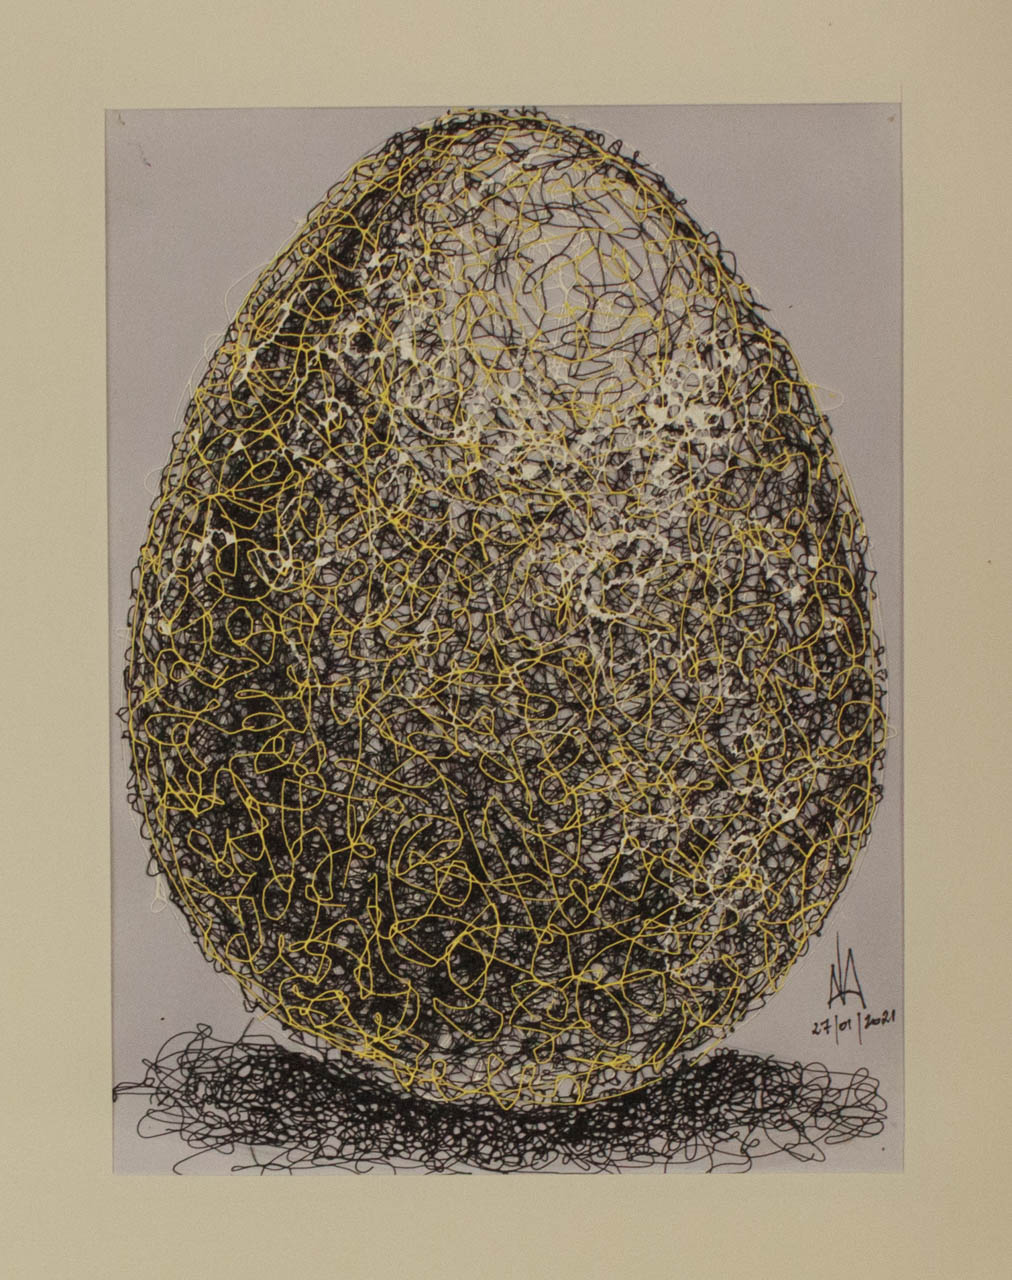 Egg in a new style on the canvas